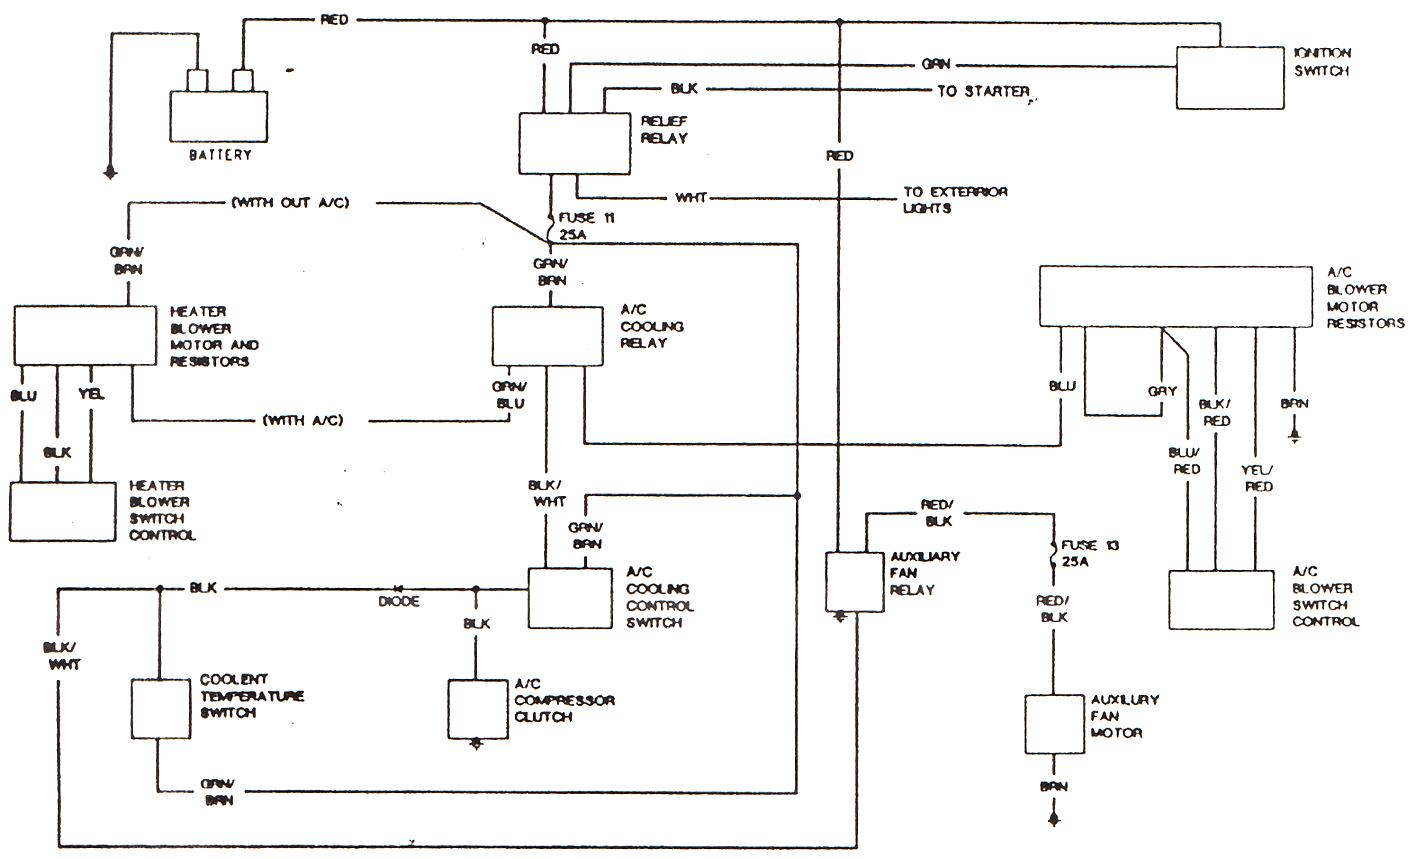 Ac Motor Diagrams2 car ac wiring diagram pdf ac motor diagram \u2022 free wiring diagrams online car wiring diagrams at n-0.co